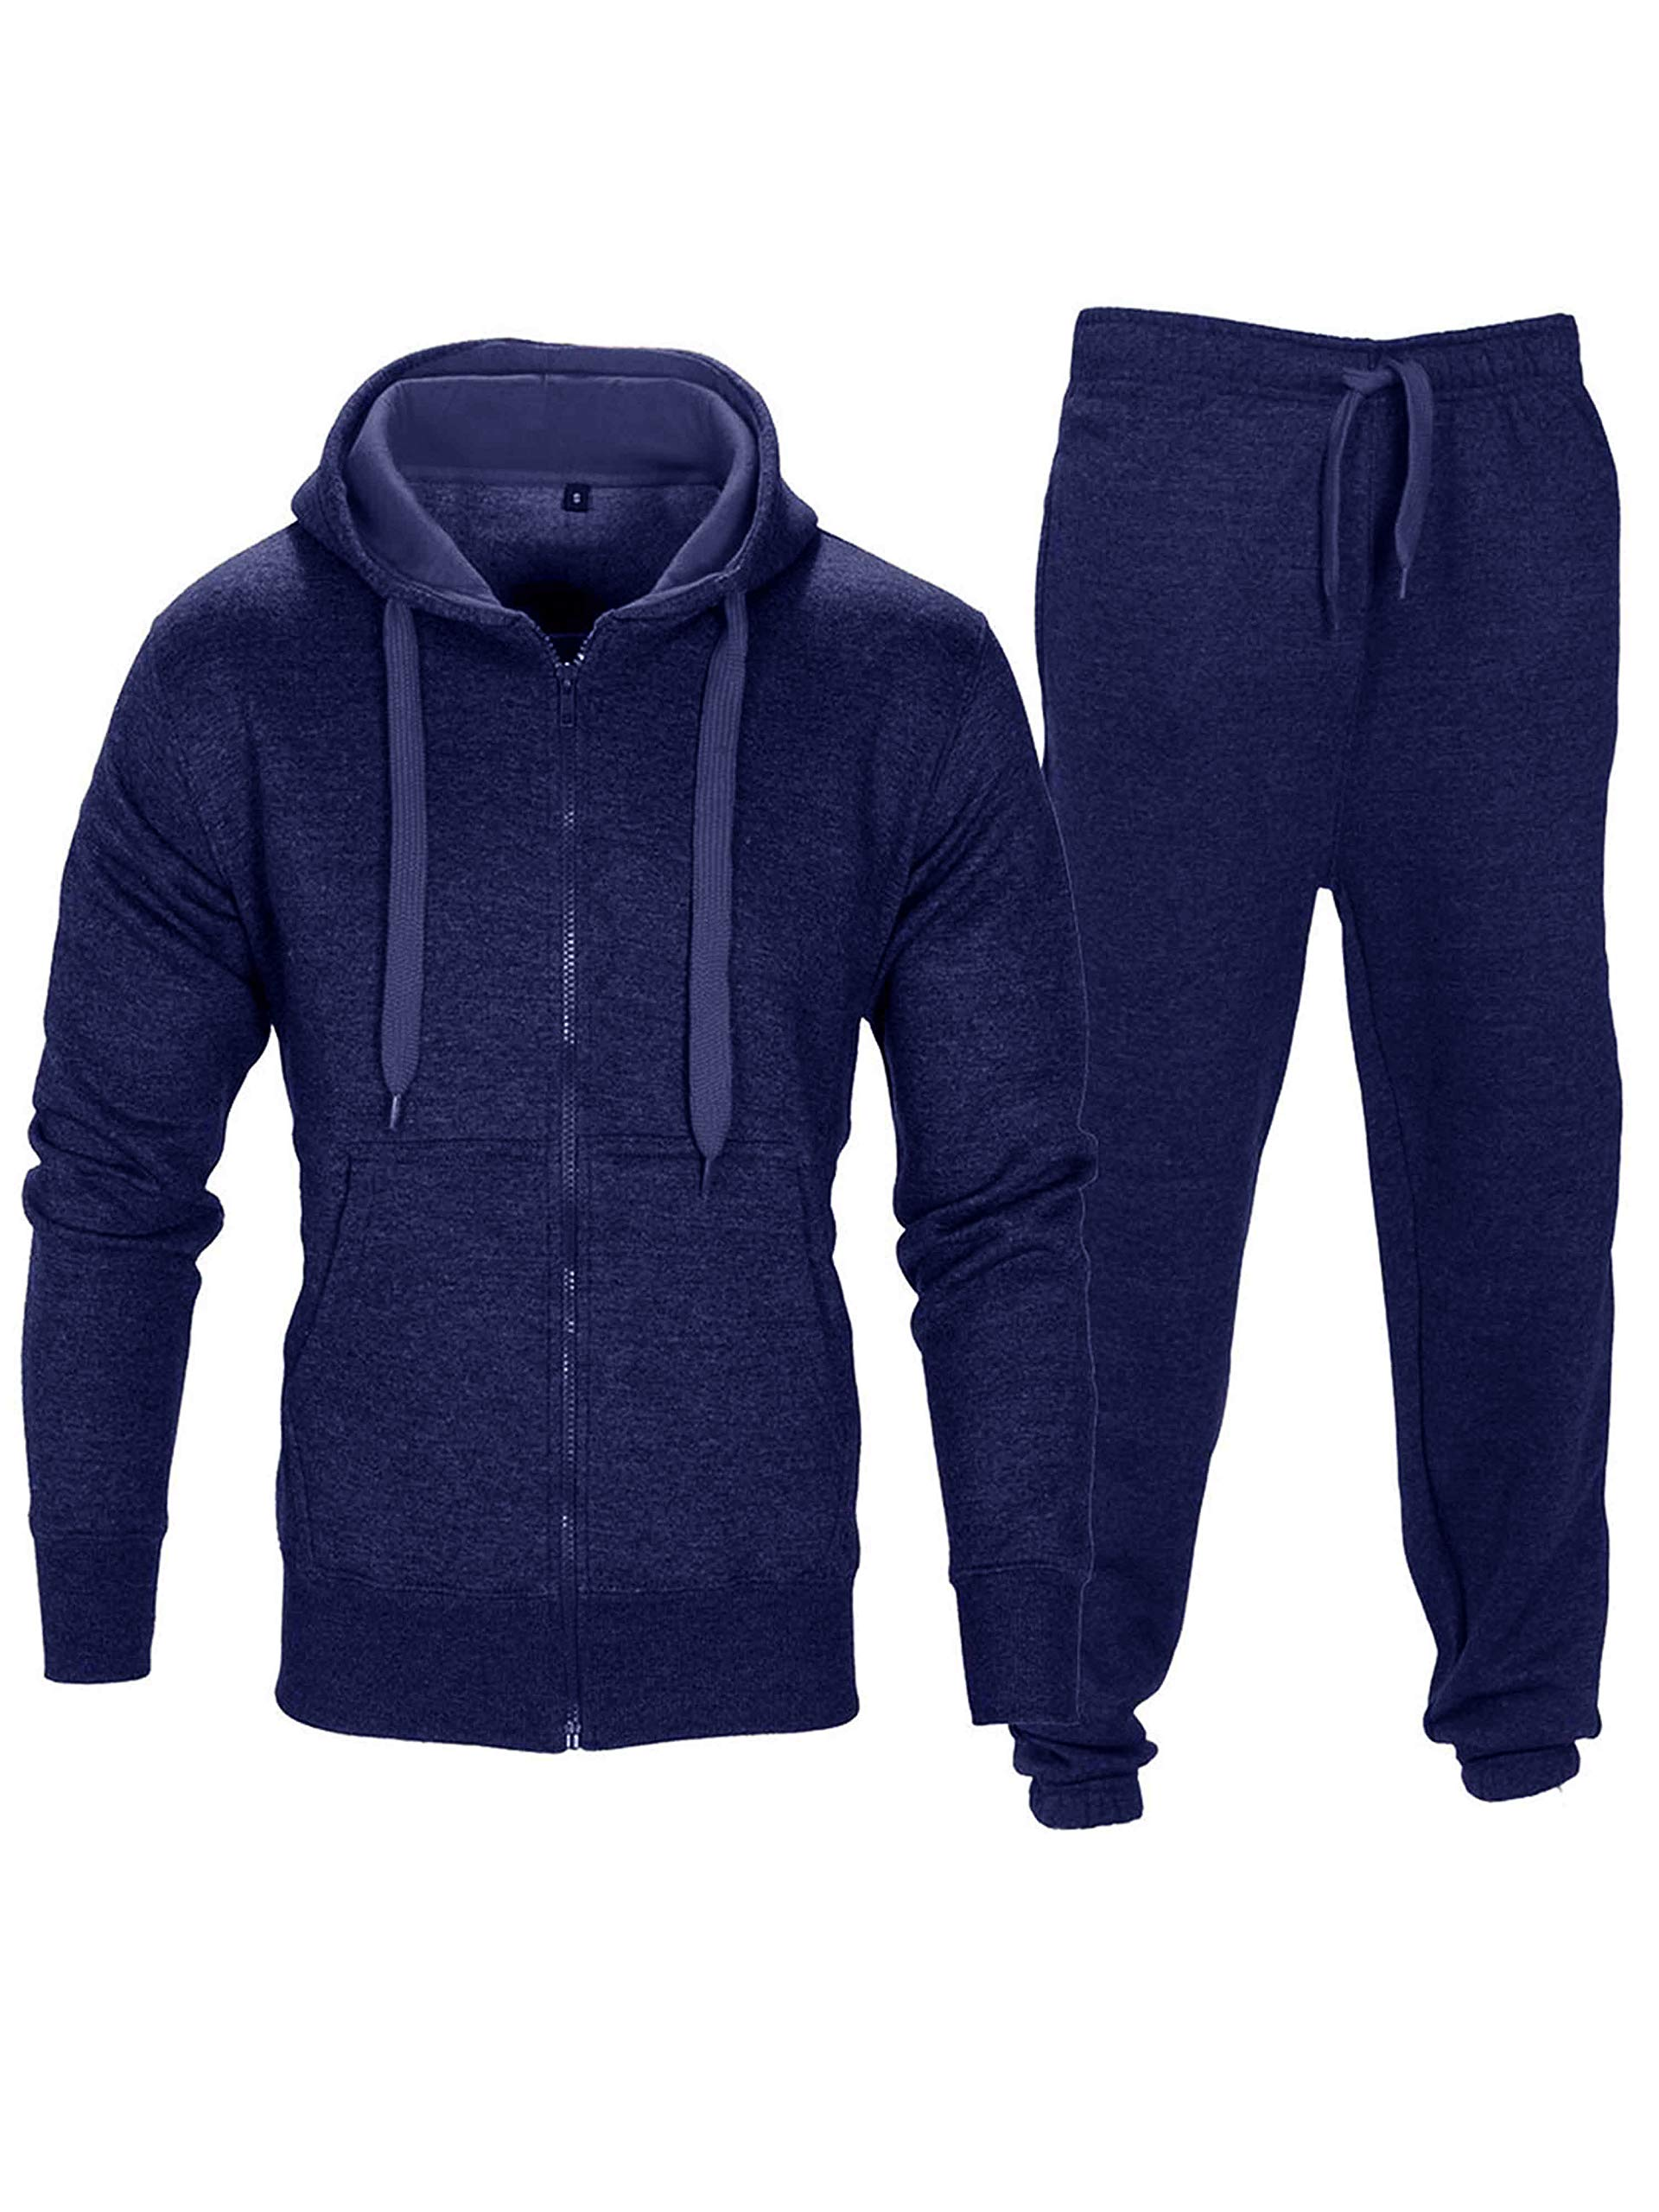 Boys Contrast Panel Tracksuit Hooded Hoodie Joggers Jogging Top Bottoms Pants